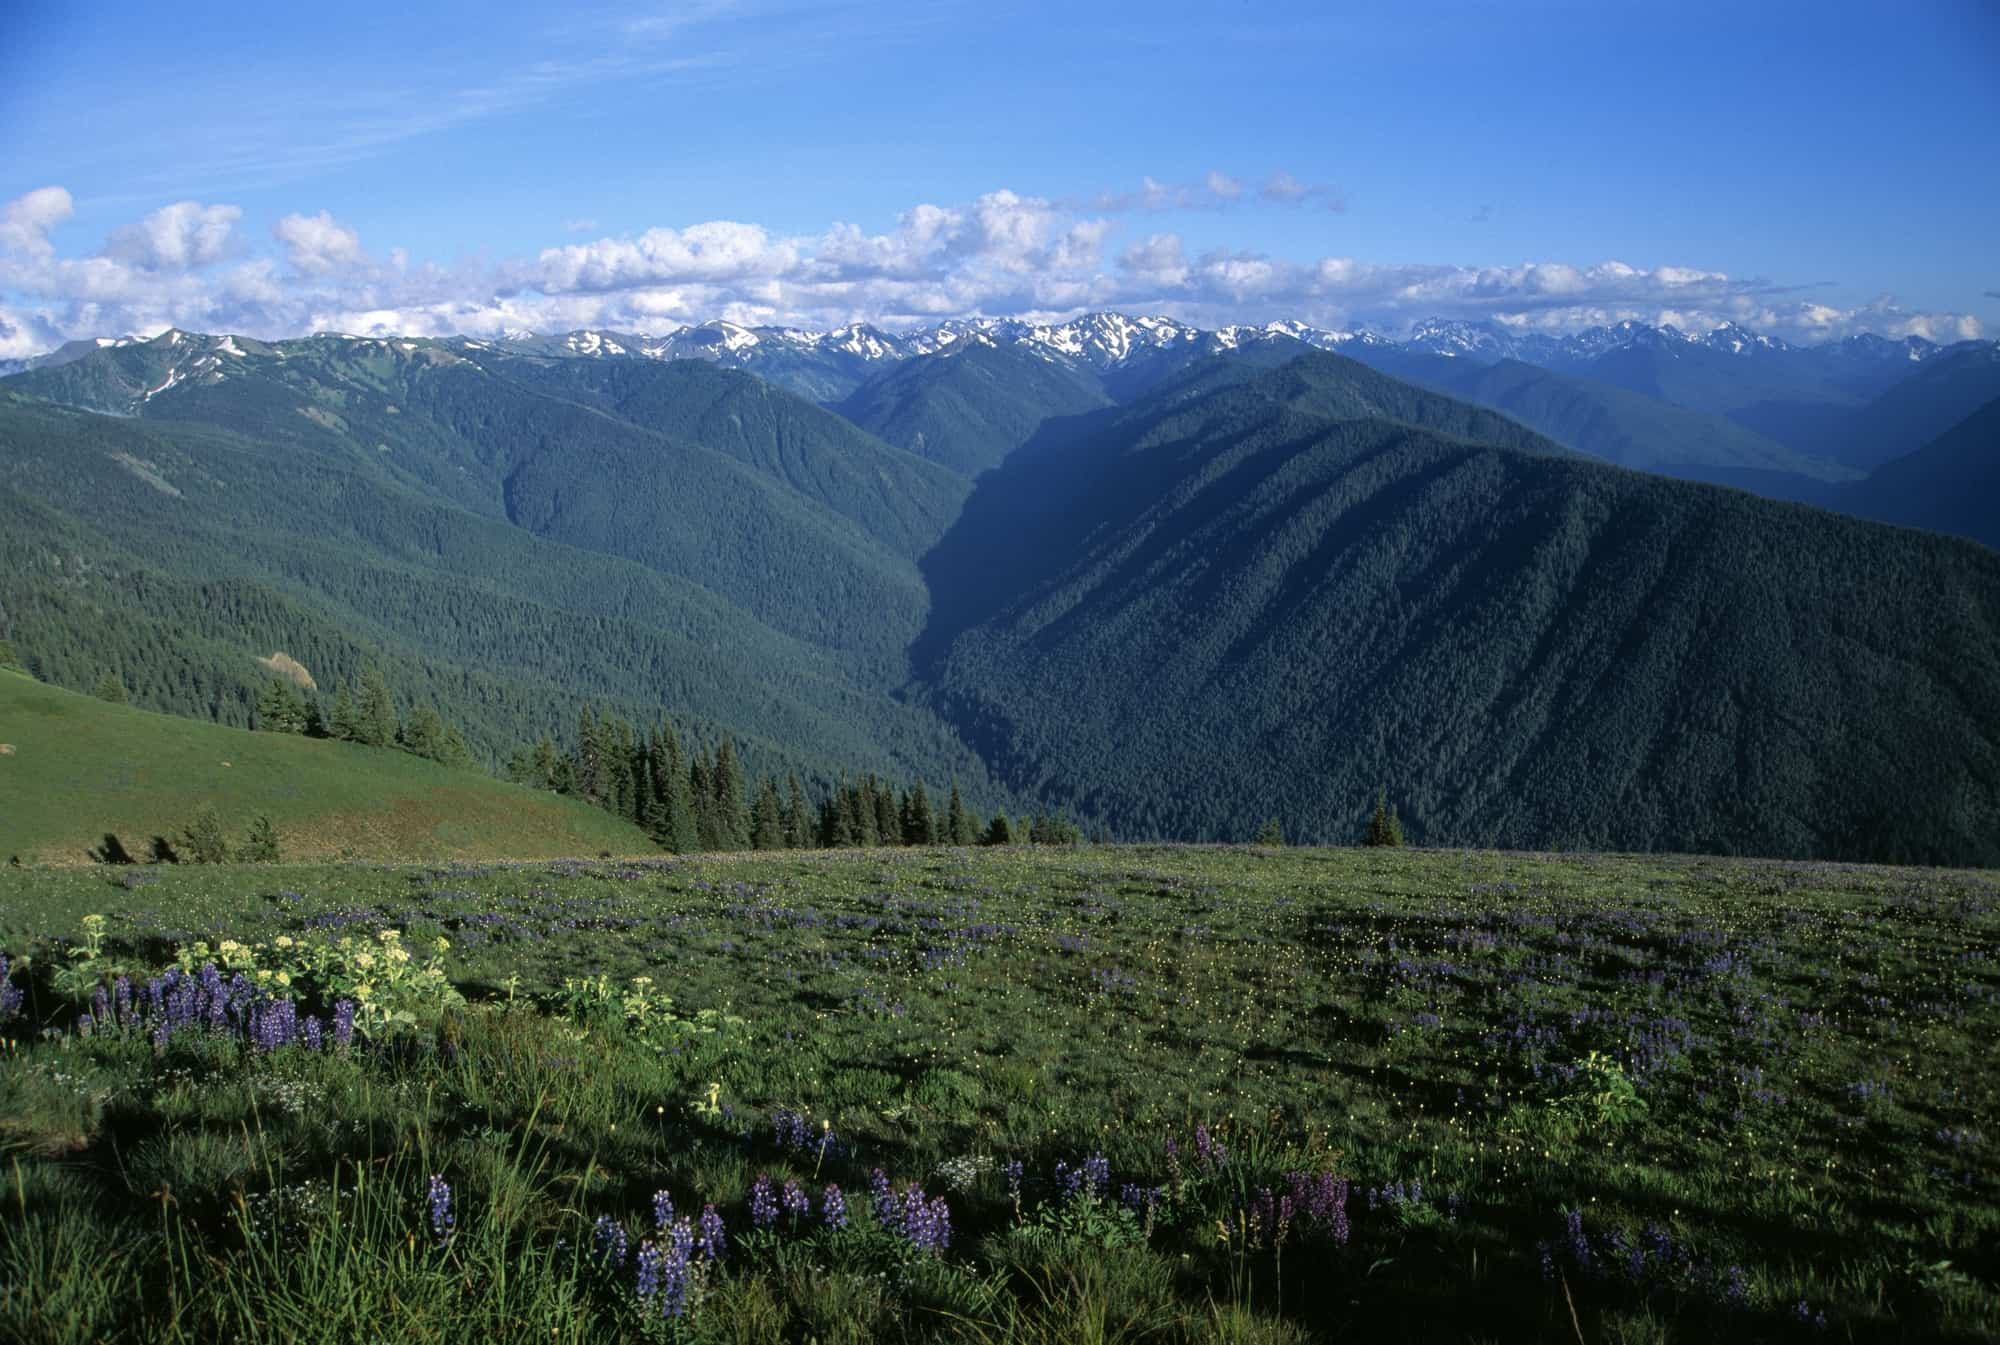 View of the Olympic Mountains in Olympic National Park, WA